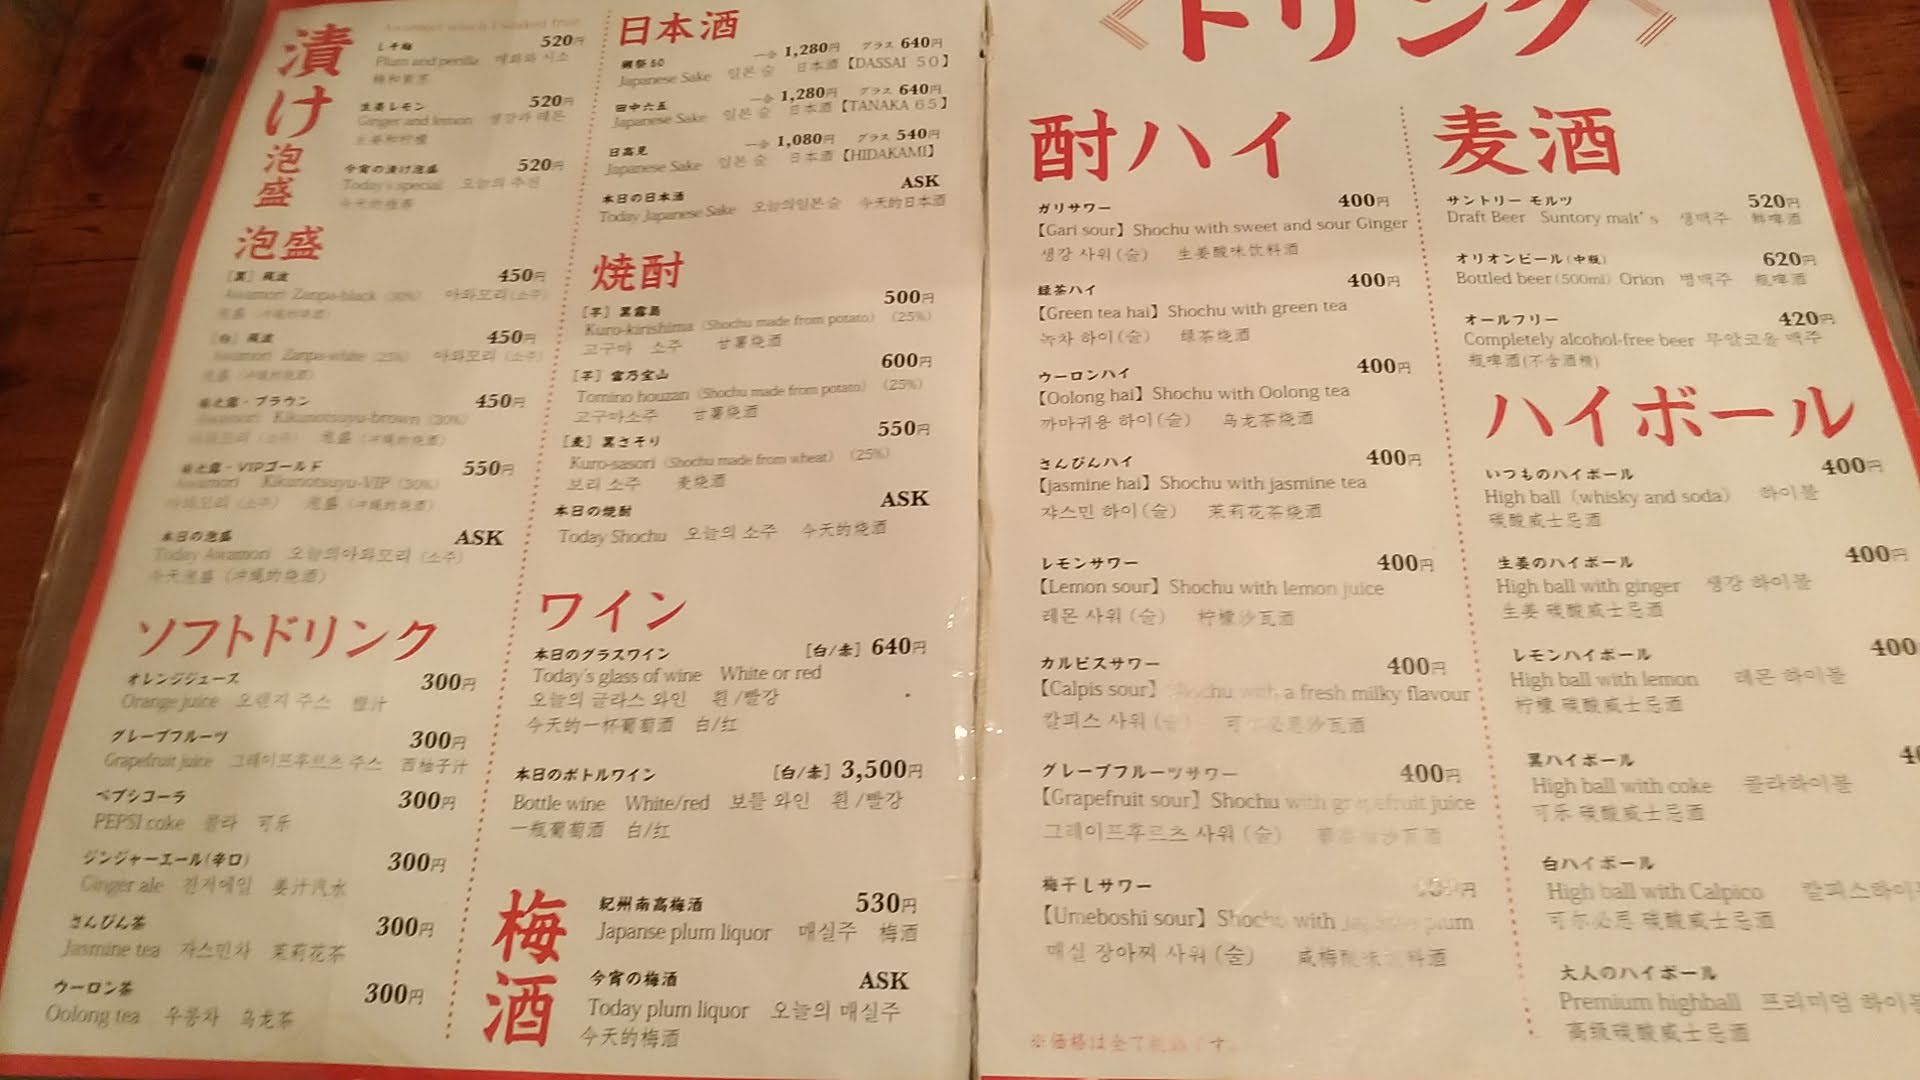 The drink menu of Sakana sushi